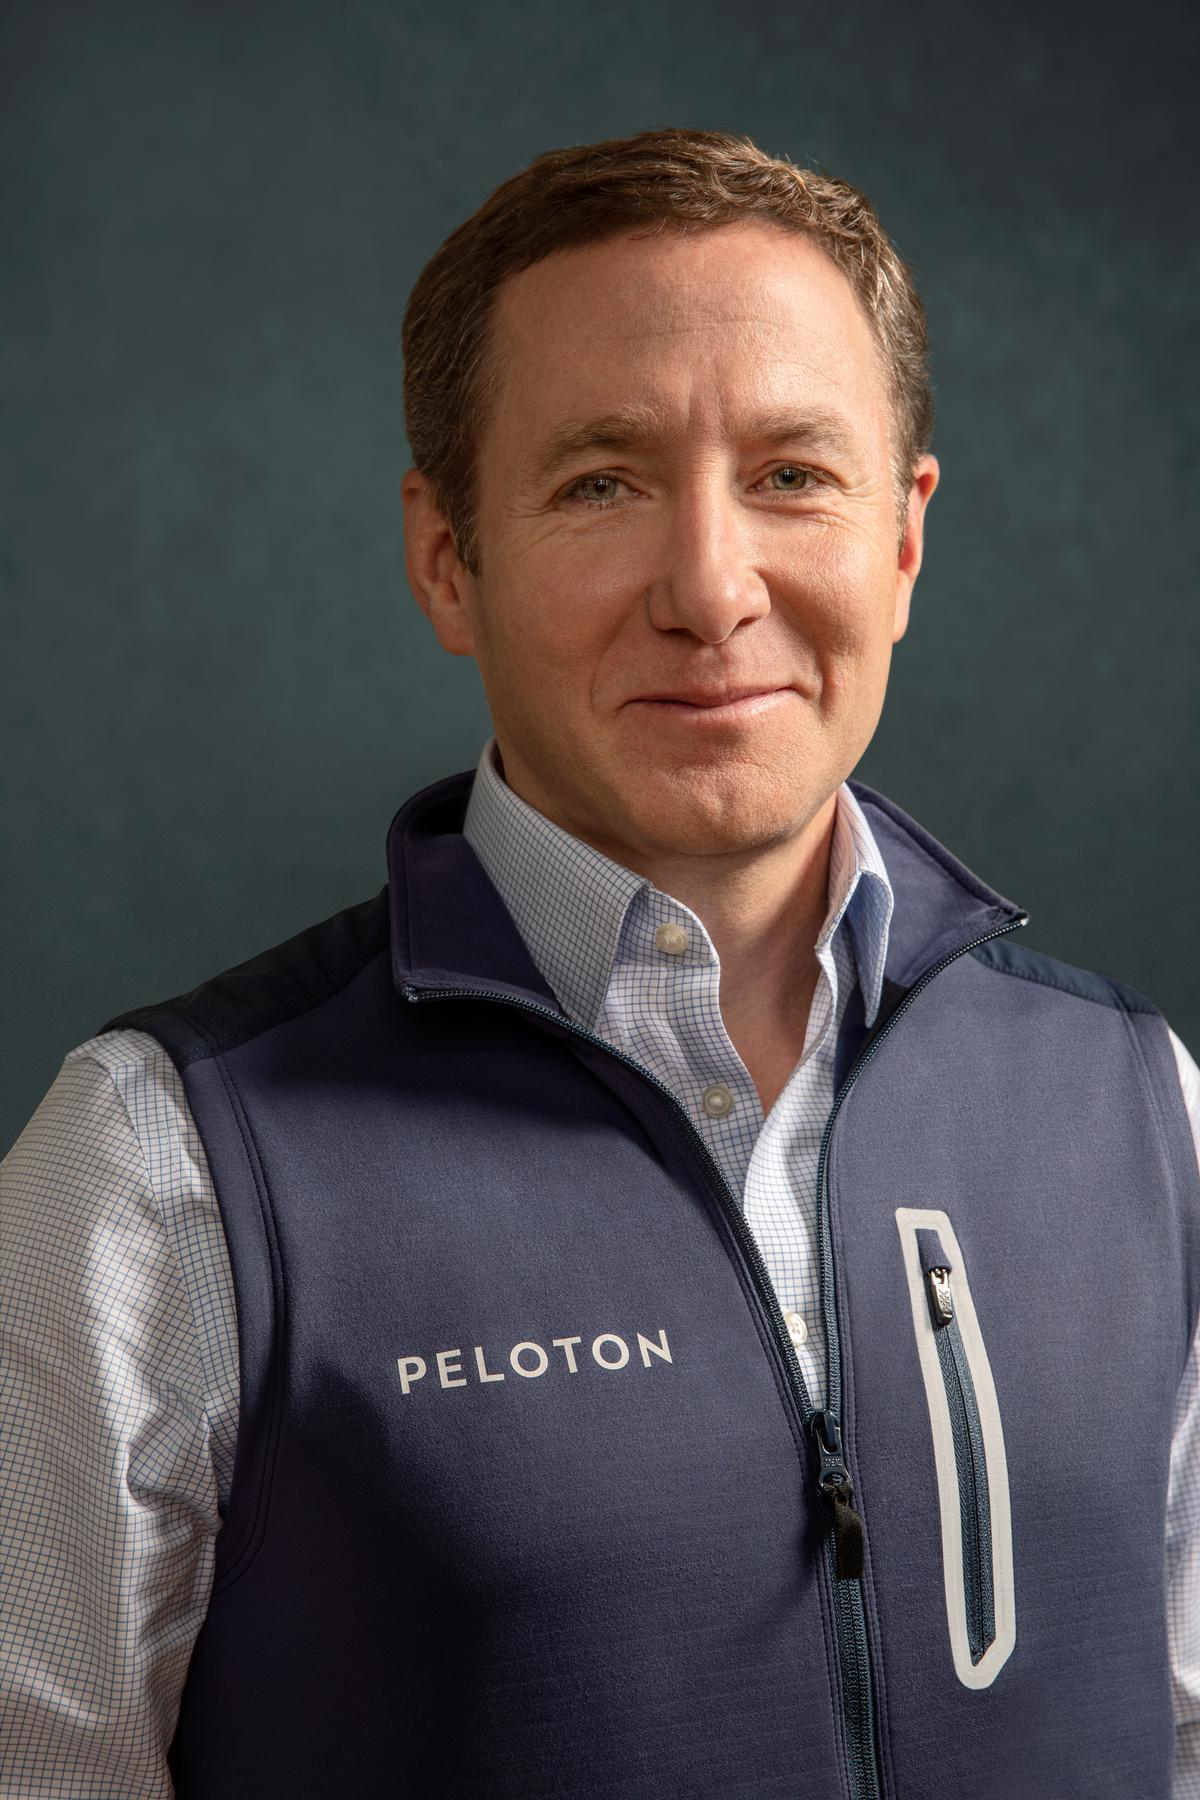 John Foley's Peloton has signalled its intention to buy Precor / Peloton